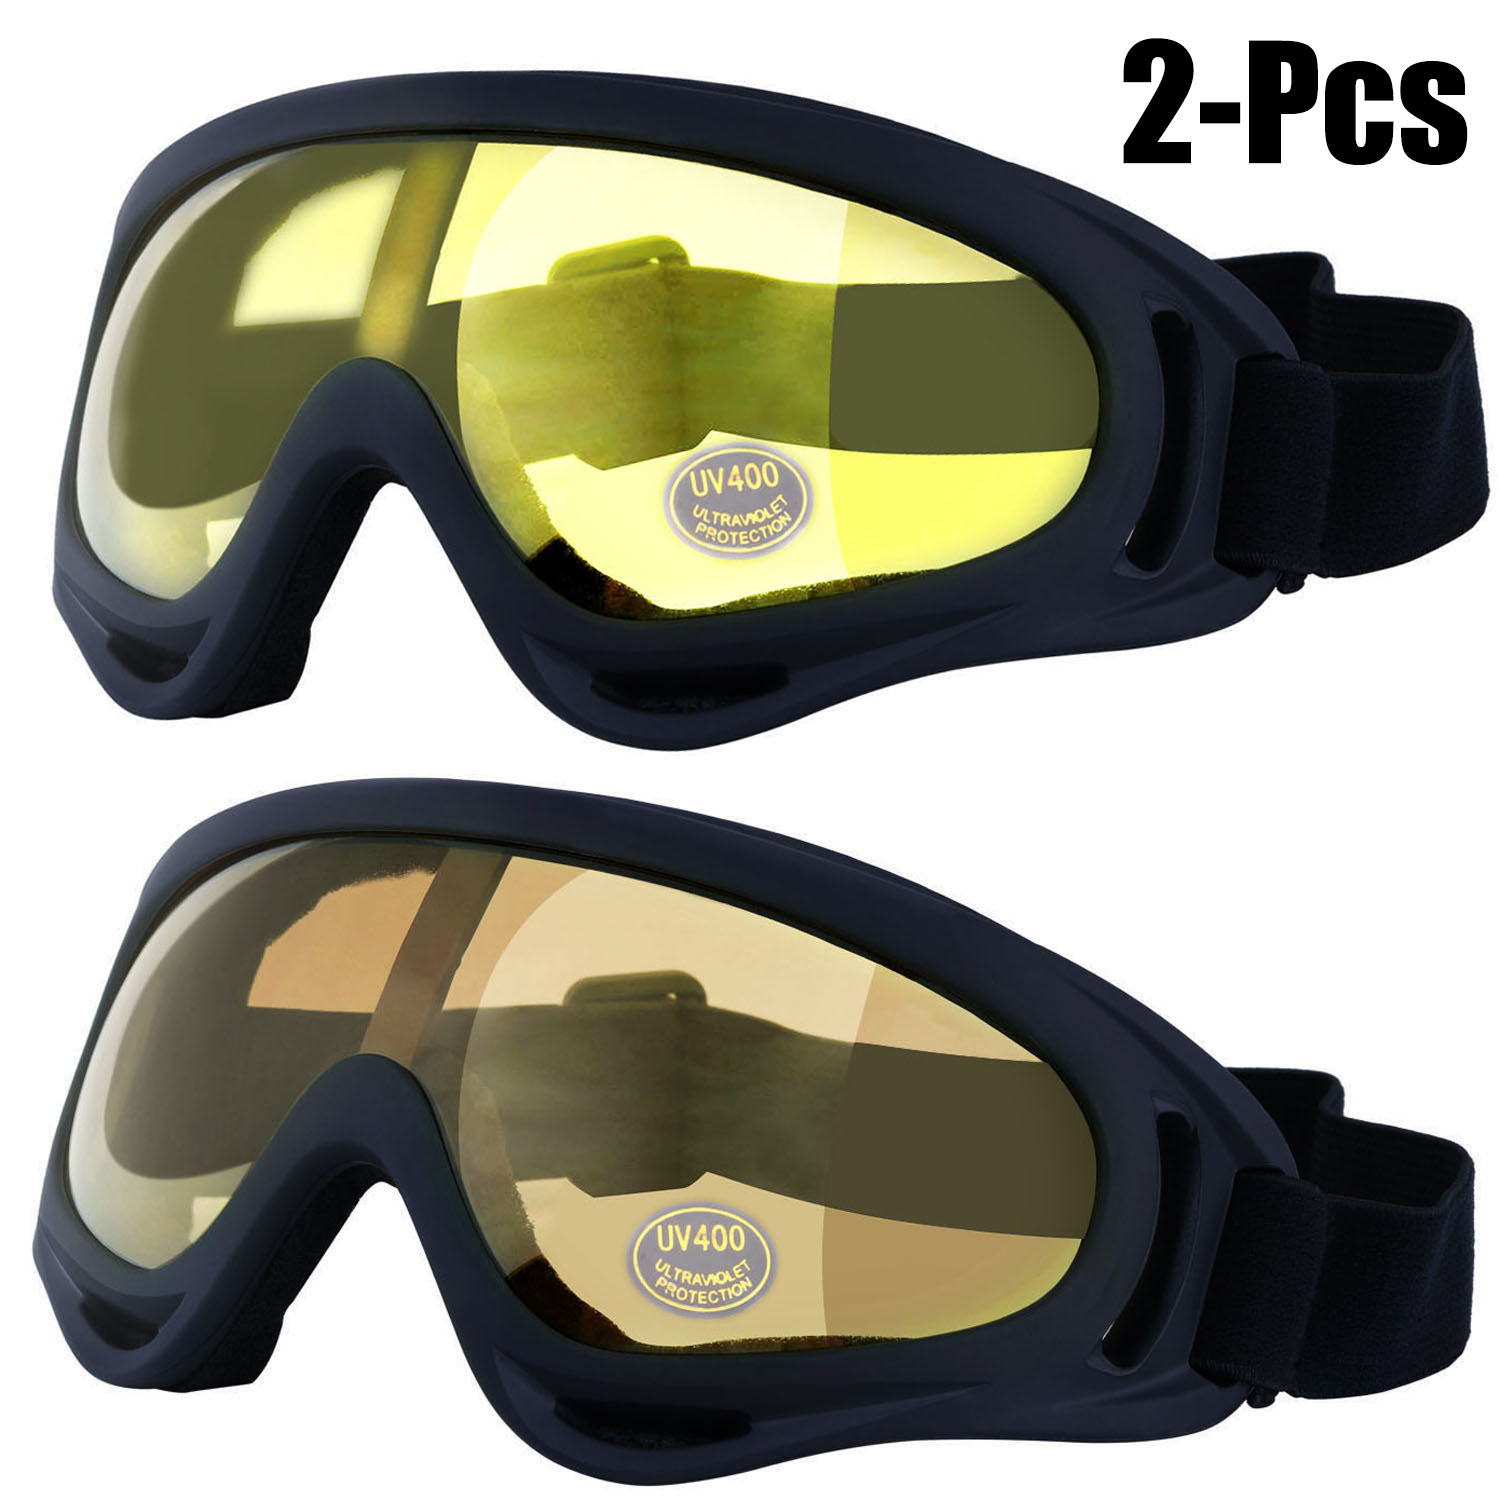 2Pcs Ski Goggles, Justdolife Unisex Professional Outdoor Sports Snowboard Windproof Adjustable UV Protective Cycling Goggles Sunglasses for Women Men